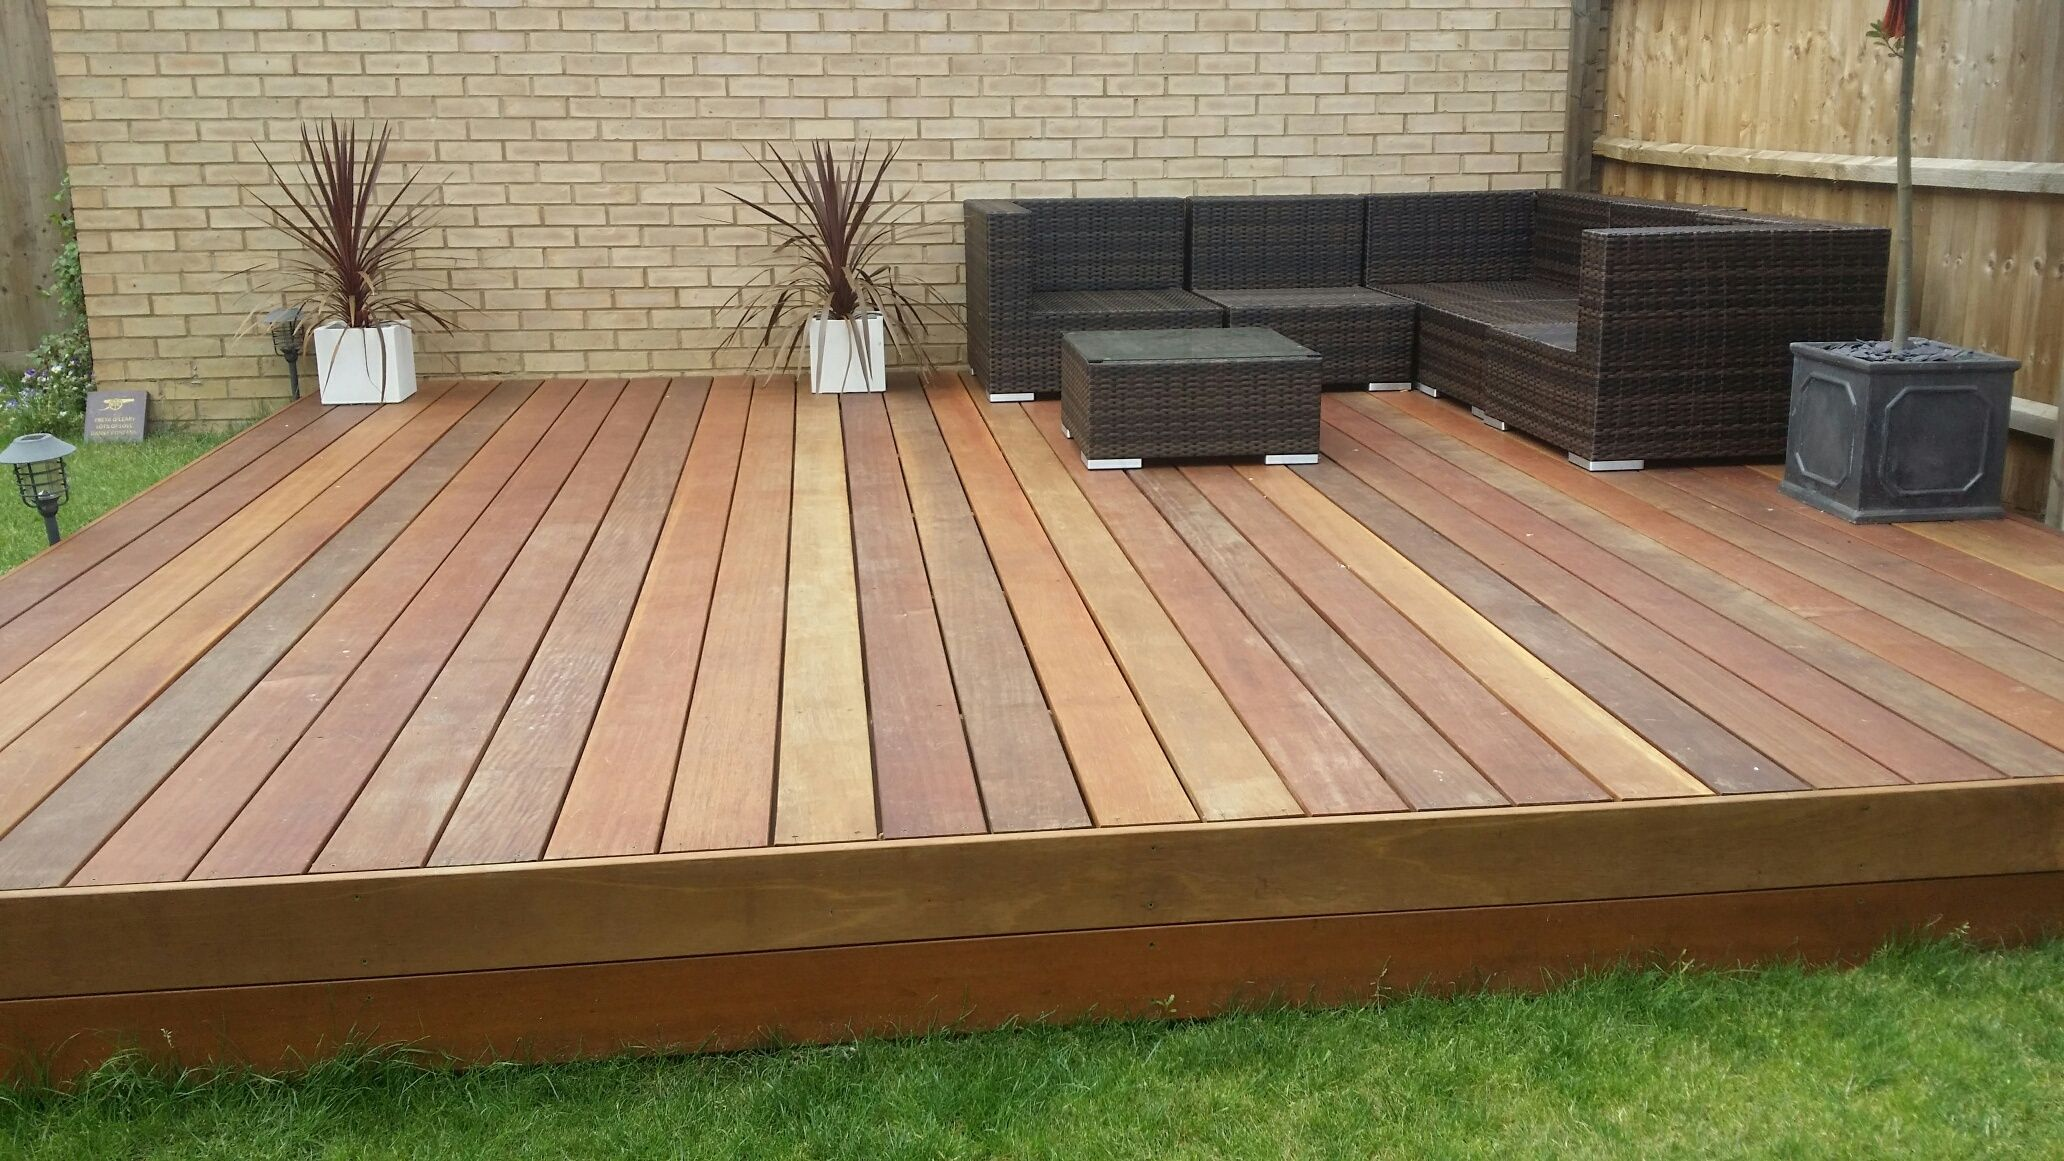 Raised decking ideas uk google search patio for Best timber for decking